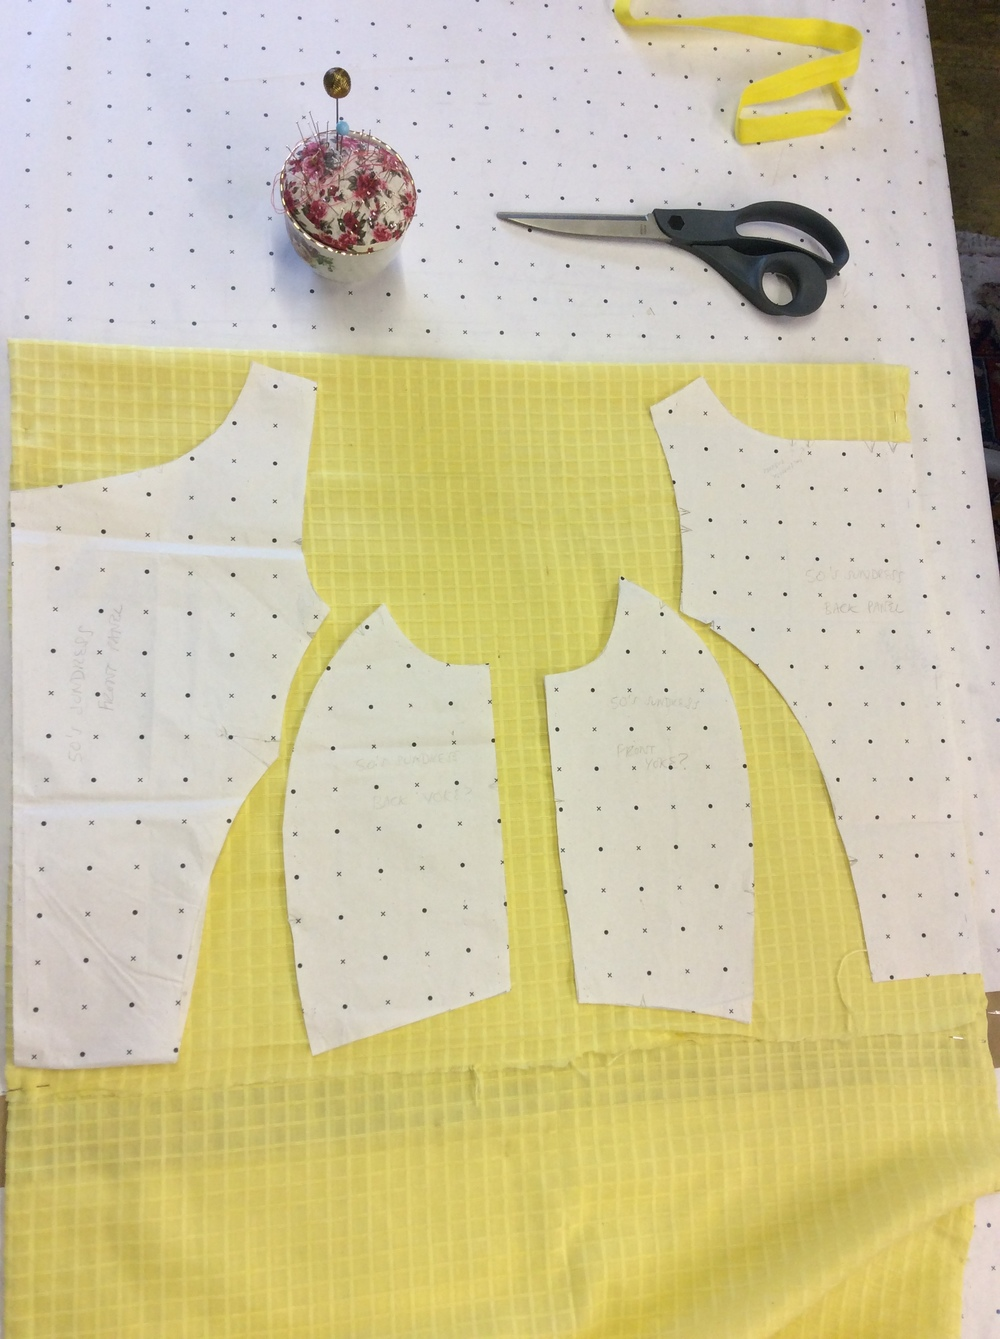 Yellow Cotton Dress at the Studio